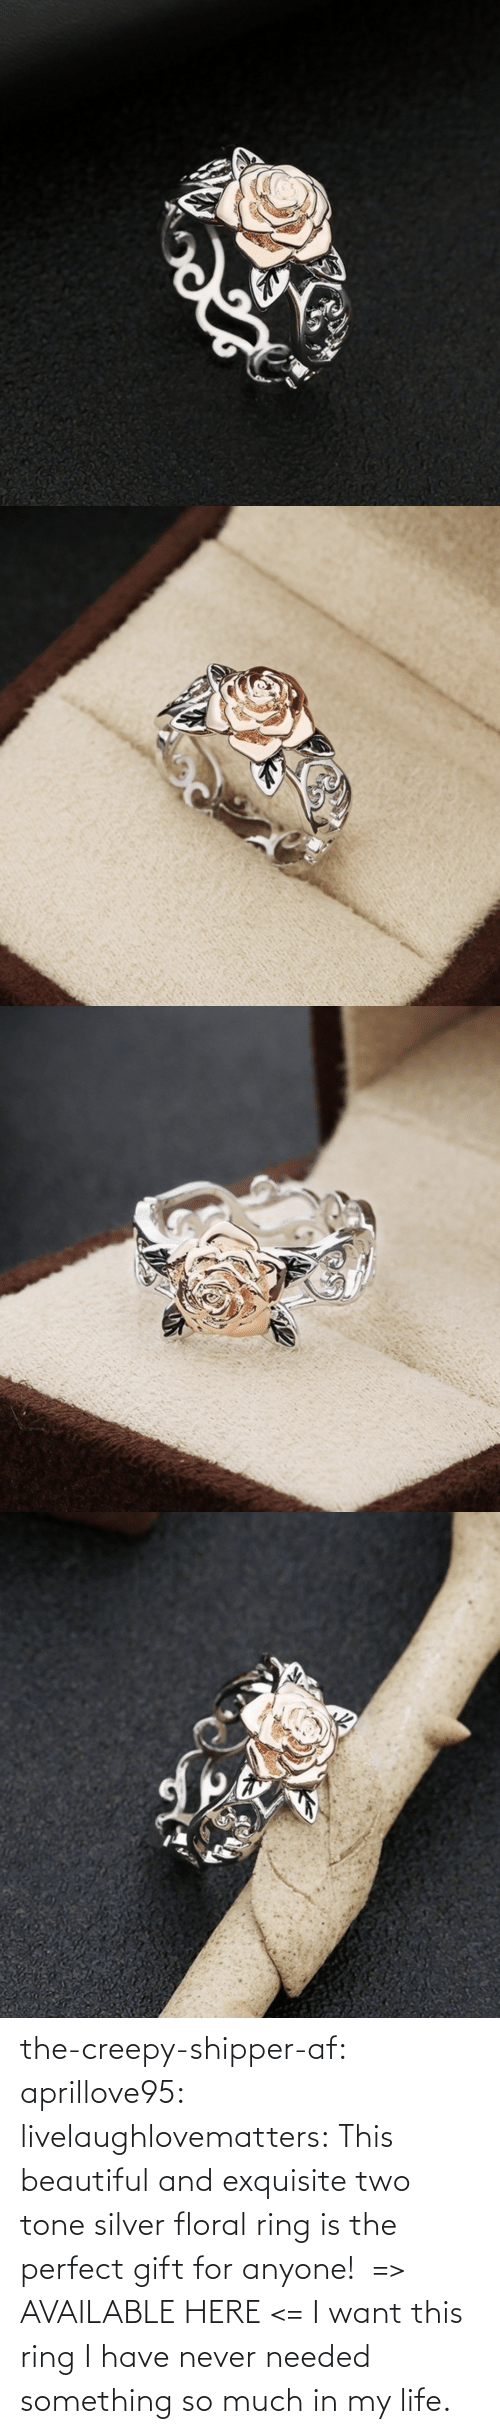 The Perfect: the-creepy-shipper-af: aprillove95:  livelaughlovematters:  This beautiful and exquisite two tone silver floral ring is the perfect gift for anyone!  => AVAILABLE HERE <=    I want this ring   I have never needed something so much in my life.